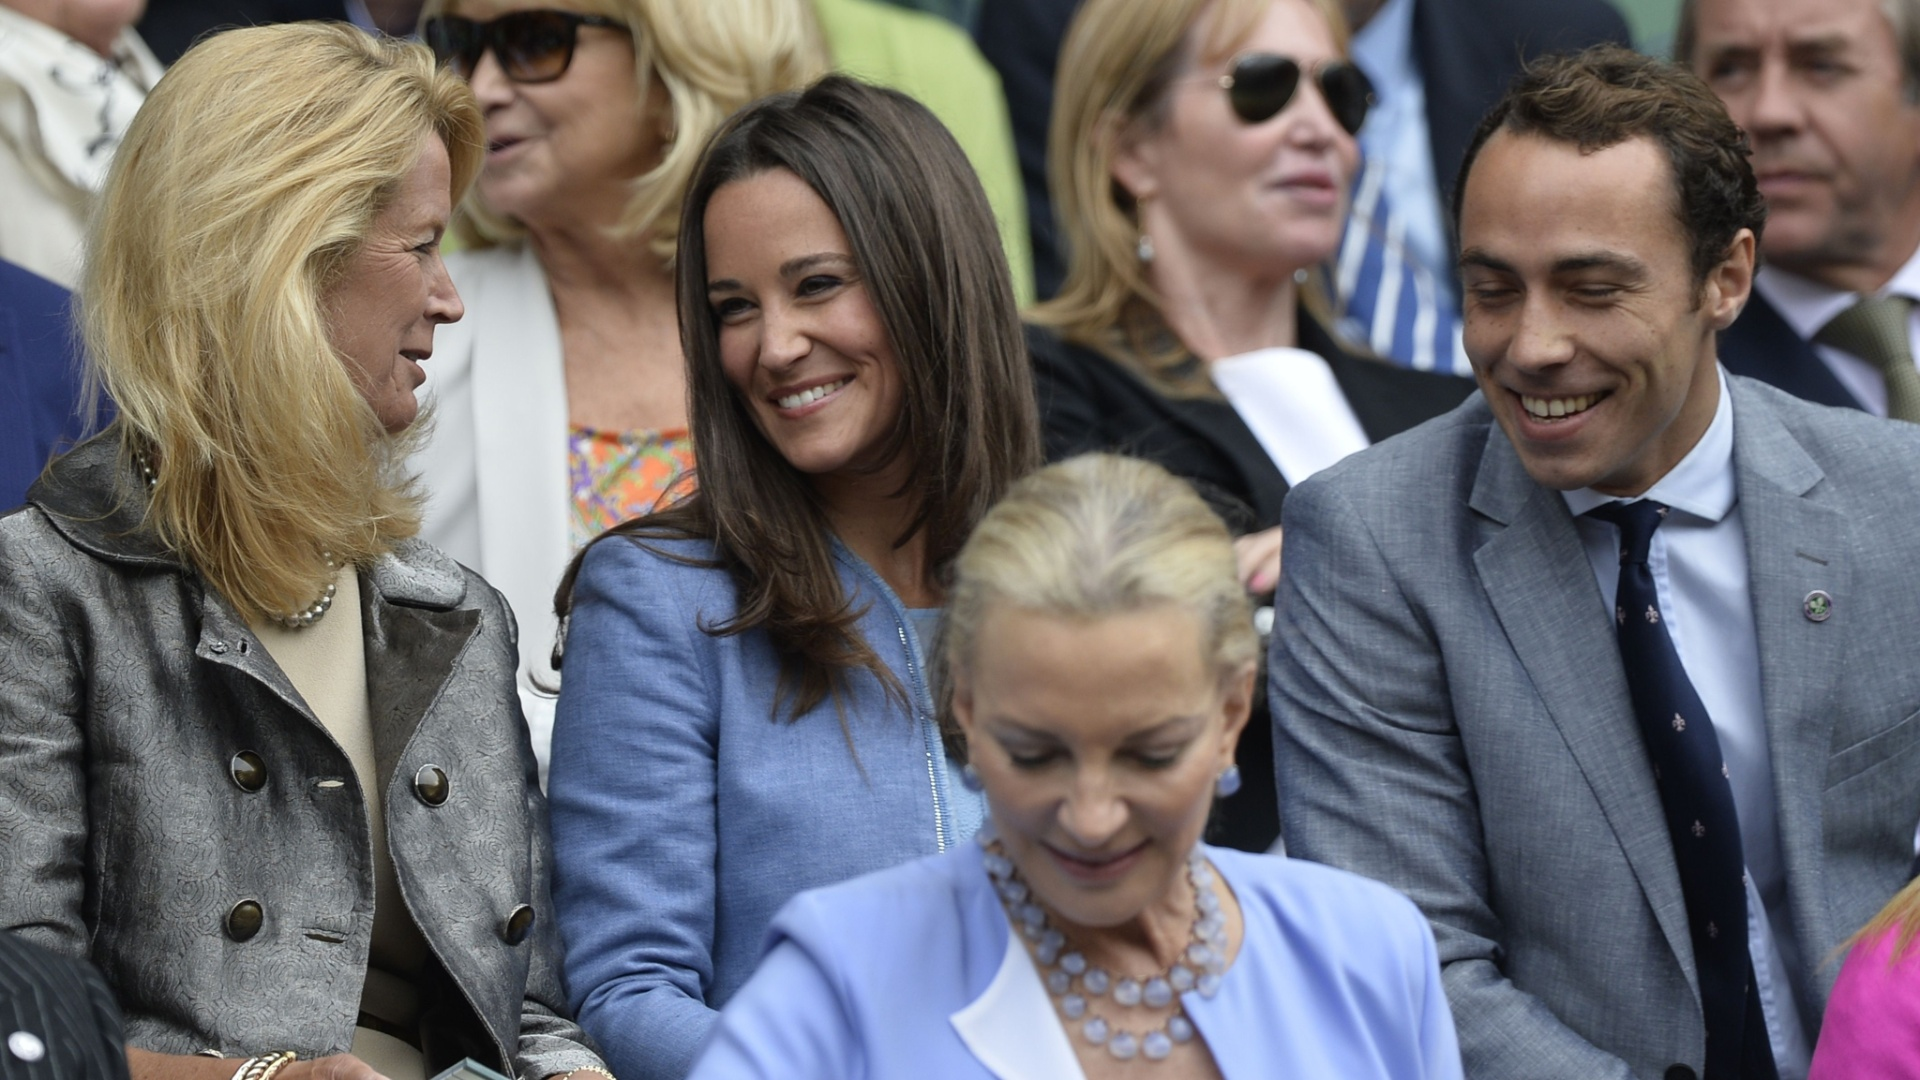 24.jun.2013 - Pippa e James Middleton, irmãos da duquesa de Cambridge Kate Middleton, assistem à estreia de Roger Federer em Wimbledon